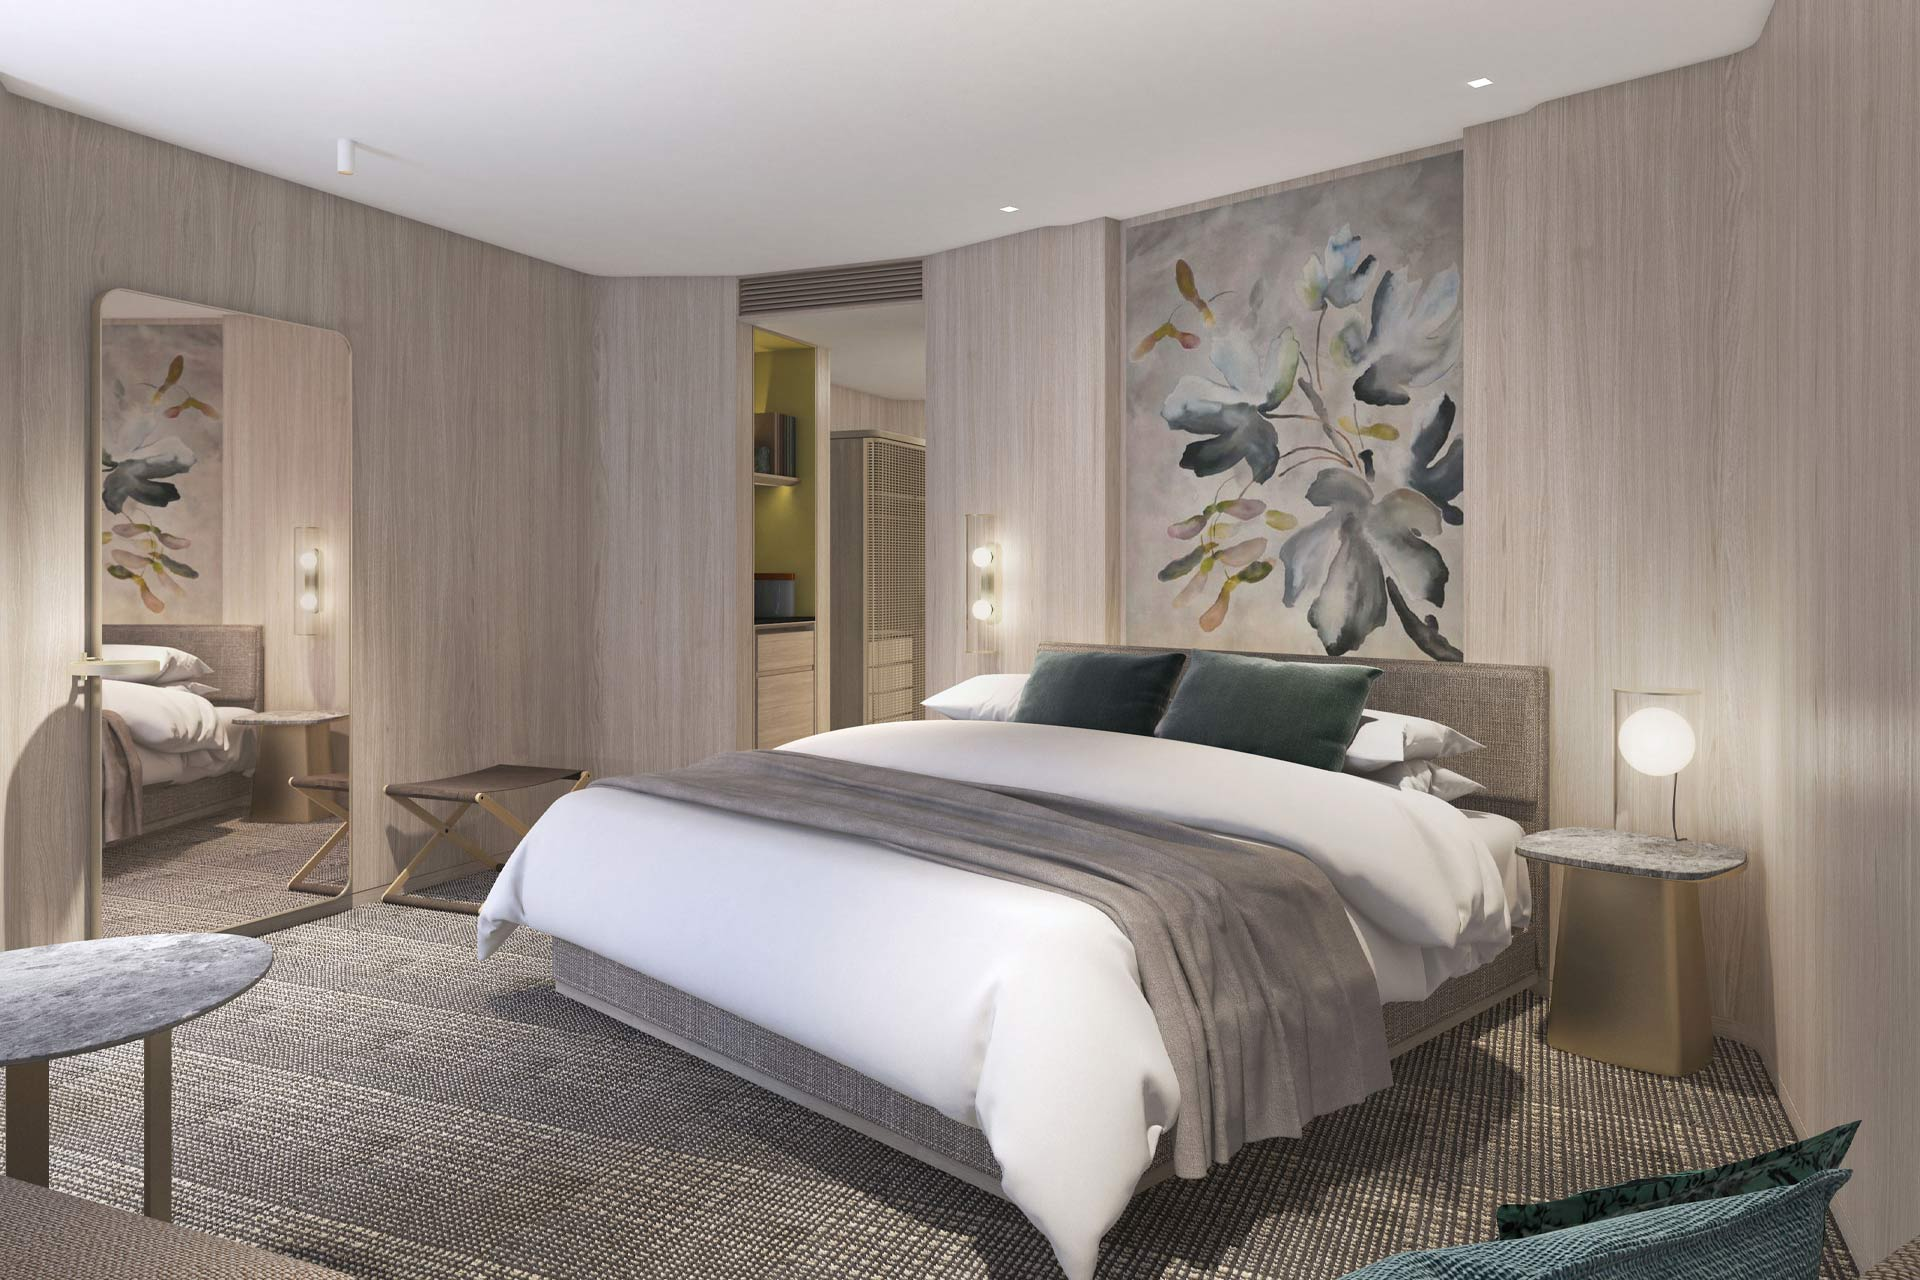 A mock-up guestroom at Pan Pacific London